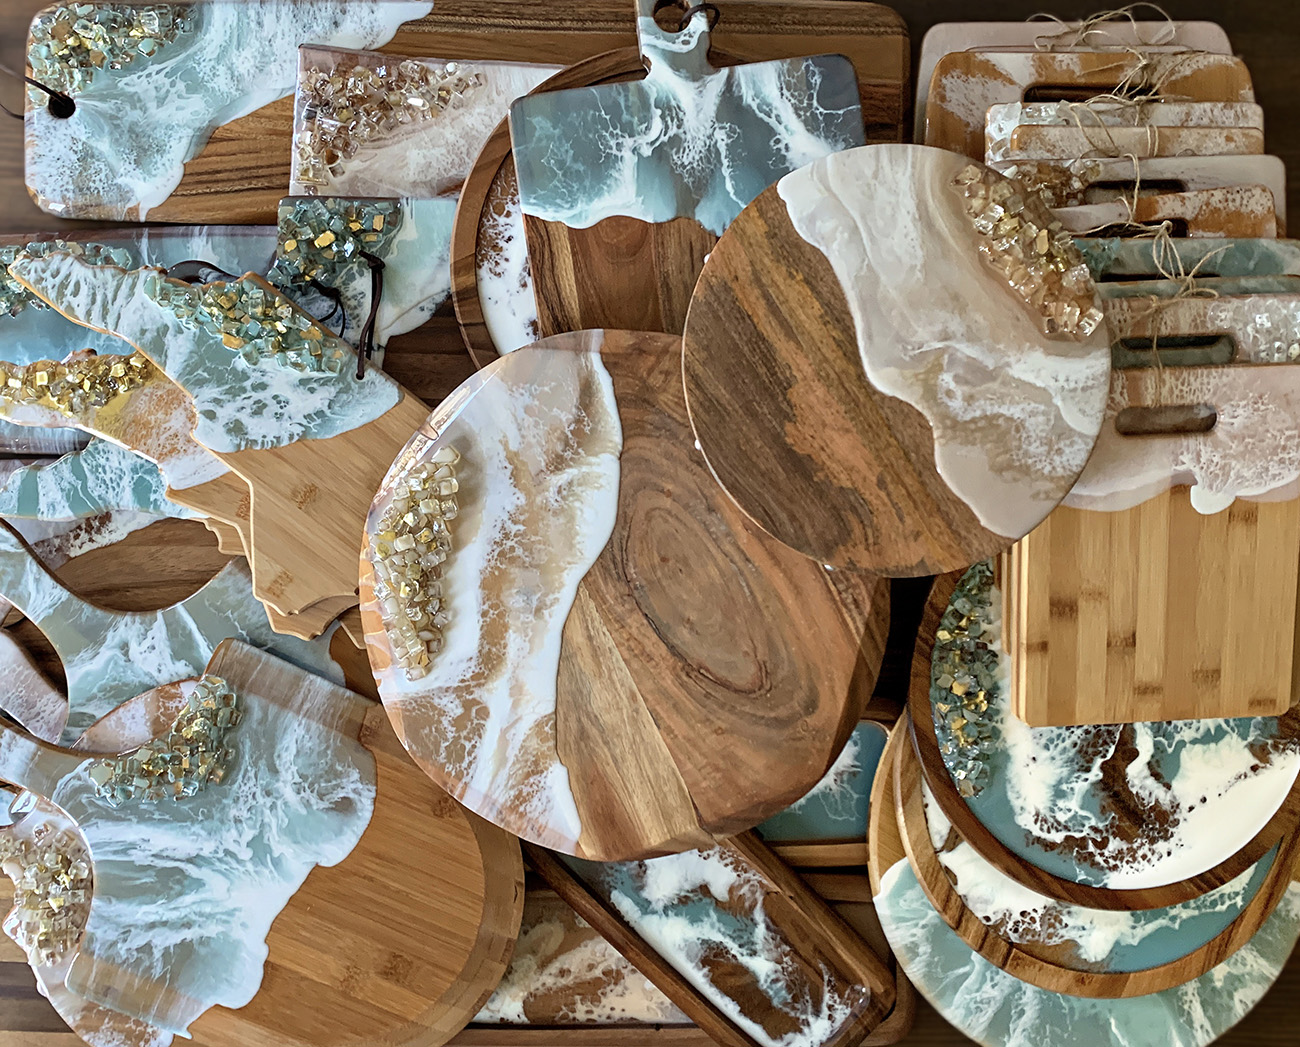 Gift guide: 34 locally made items under $150